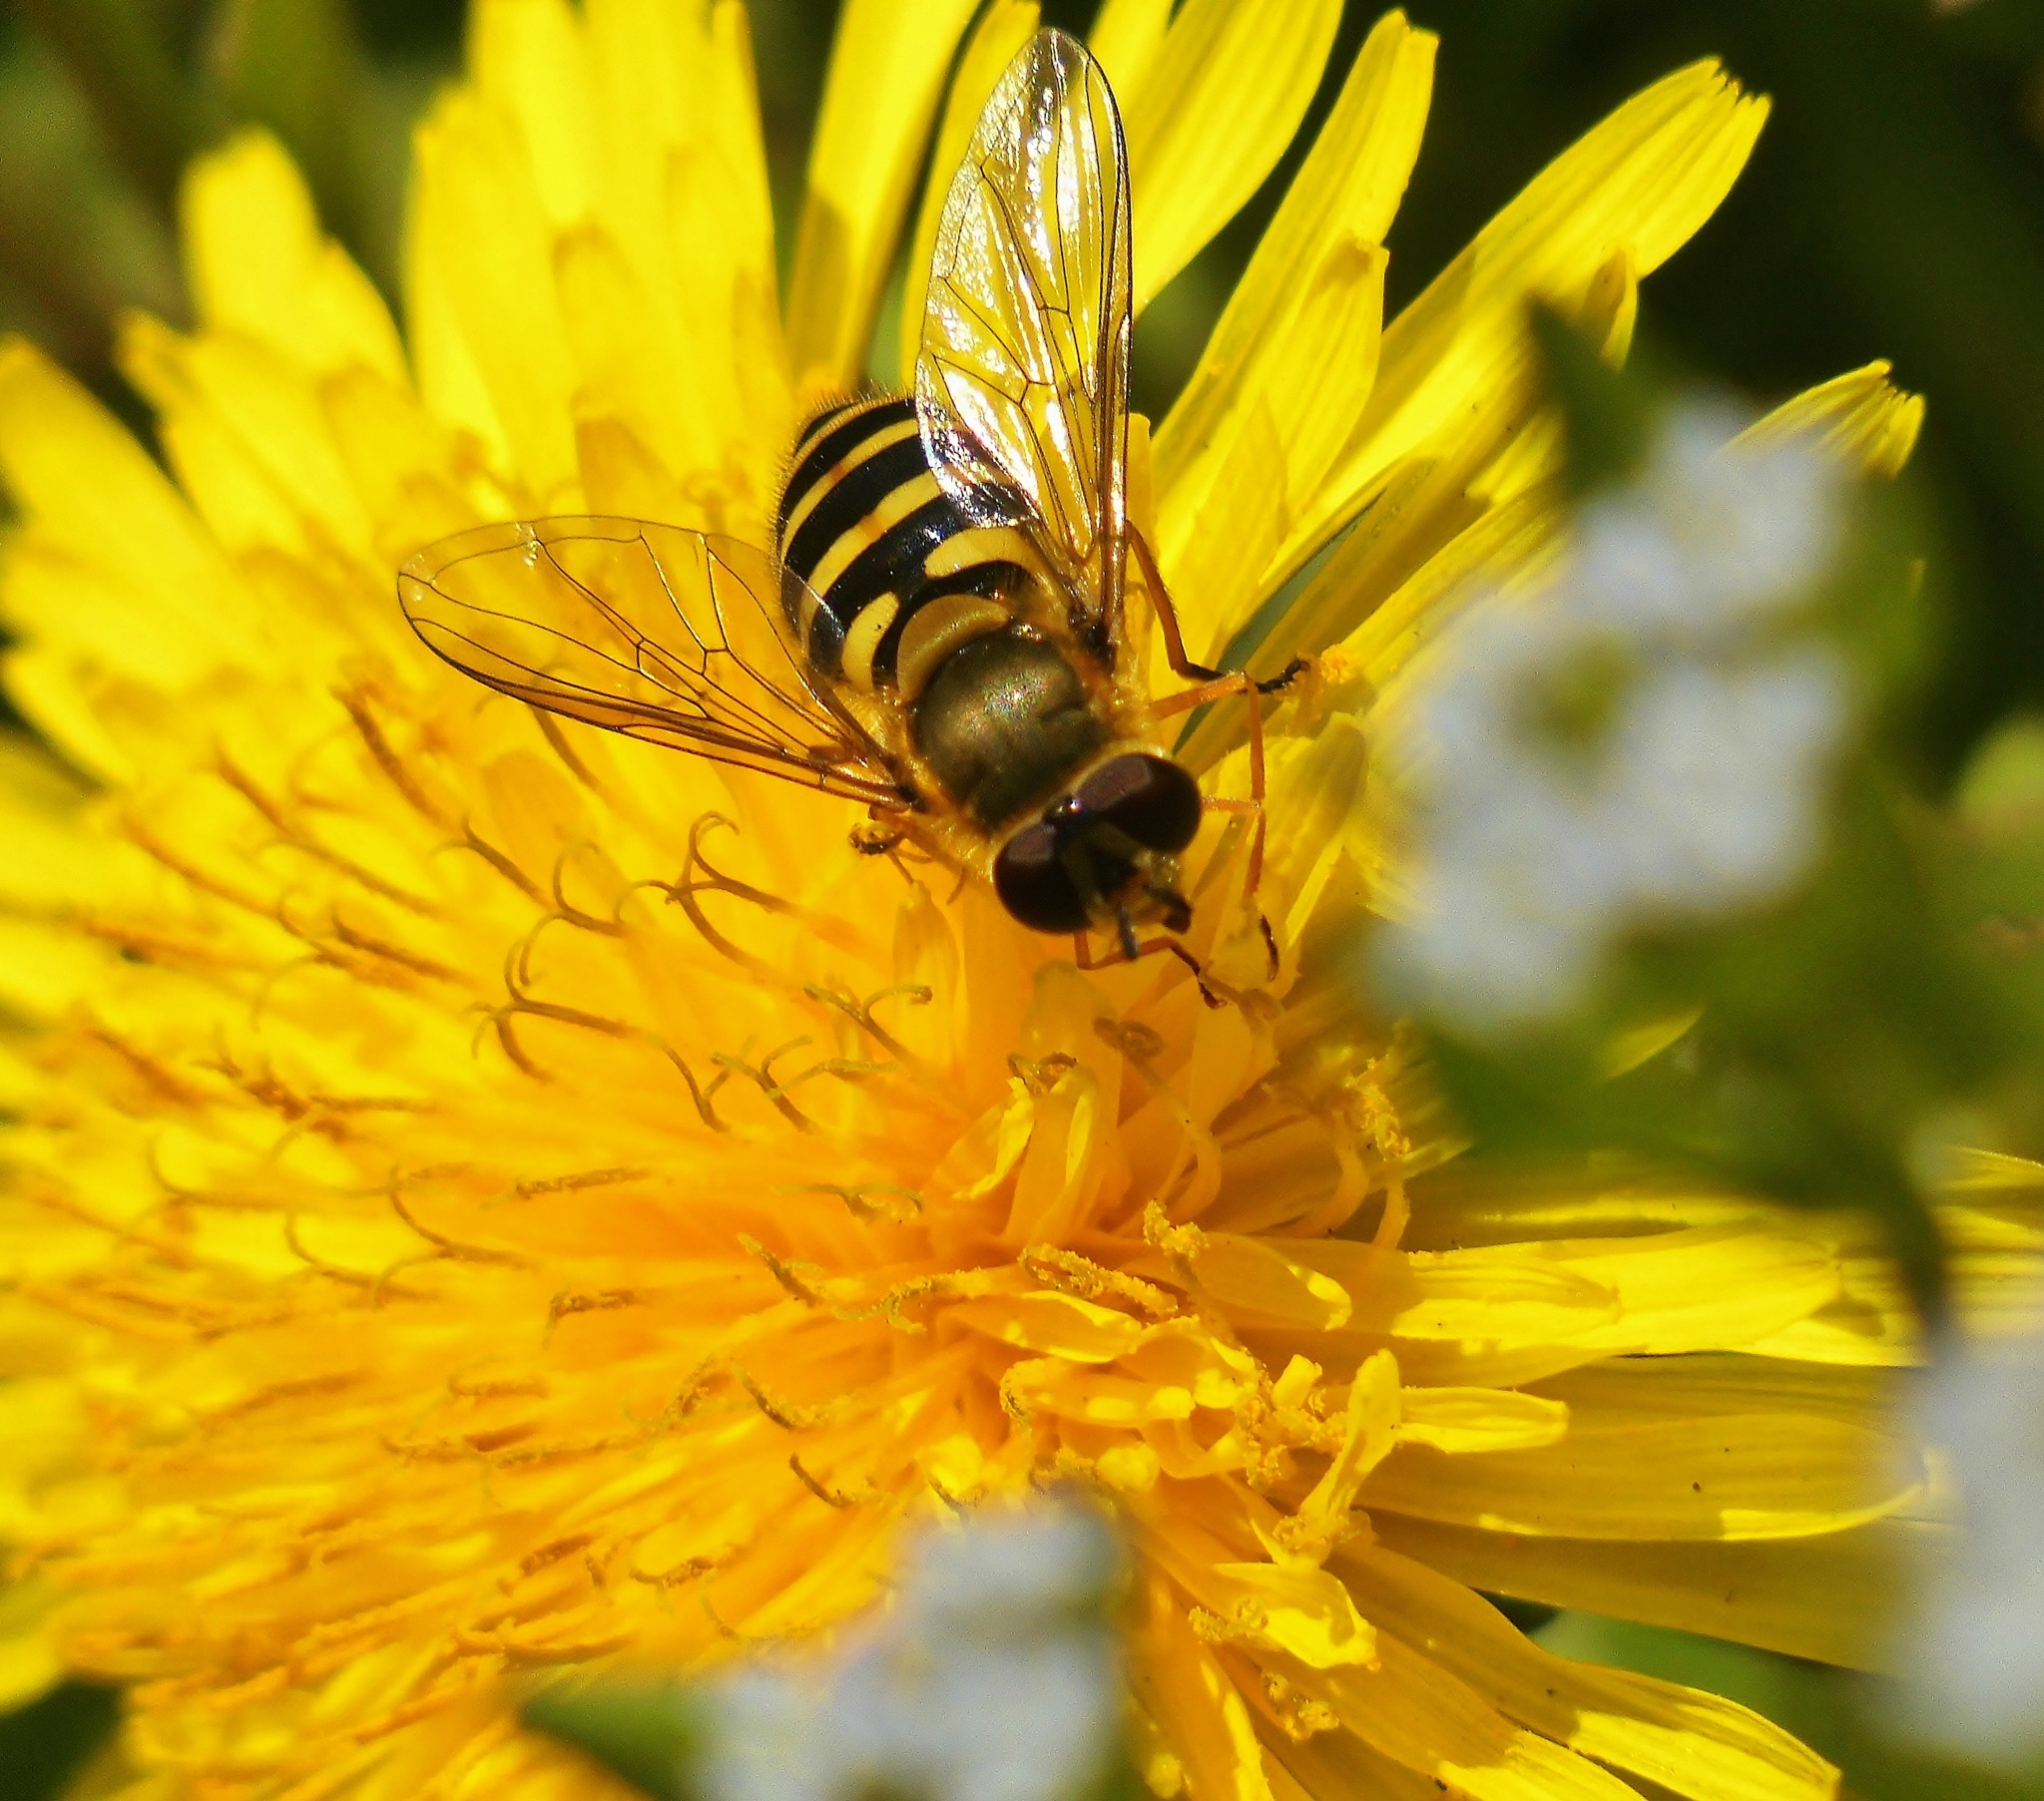 Hoverfly on dandelion by Sallyw